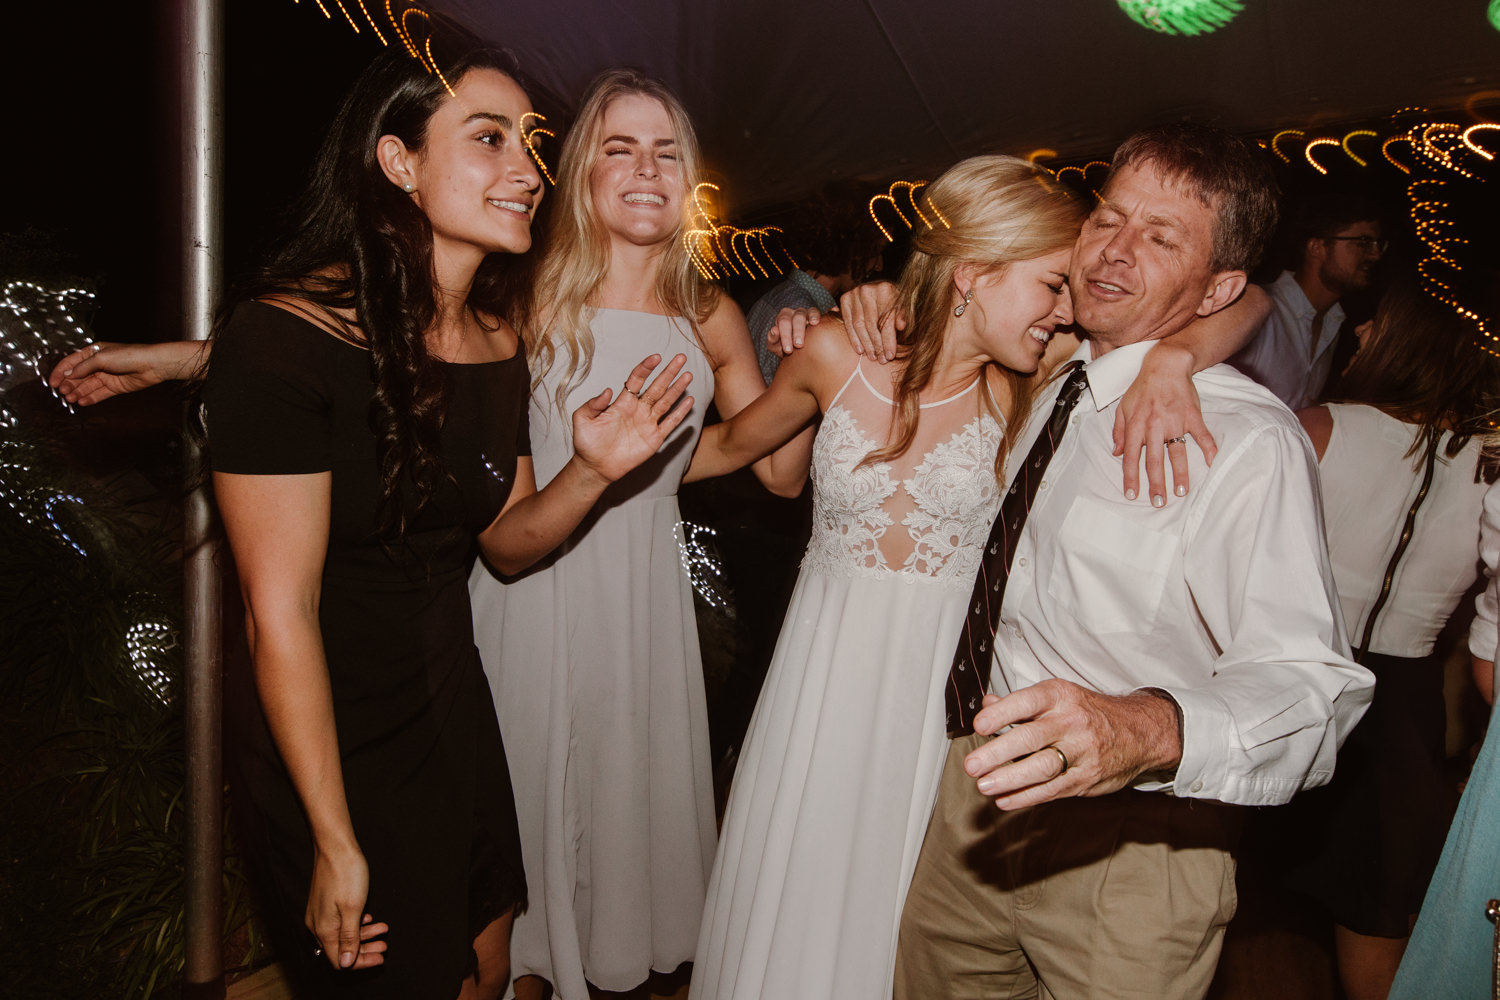 A gorgeous blonde bride crying and emotional on her wedding dance floor with friends.